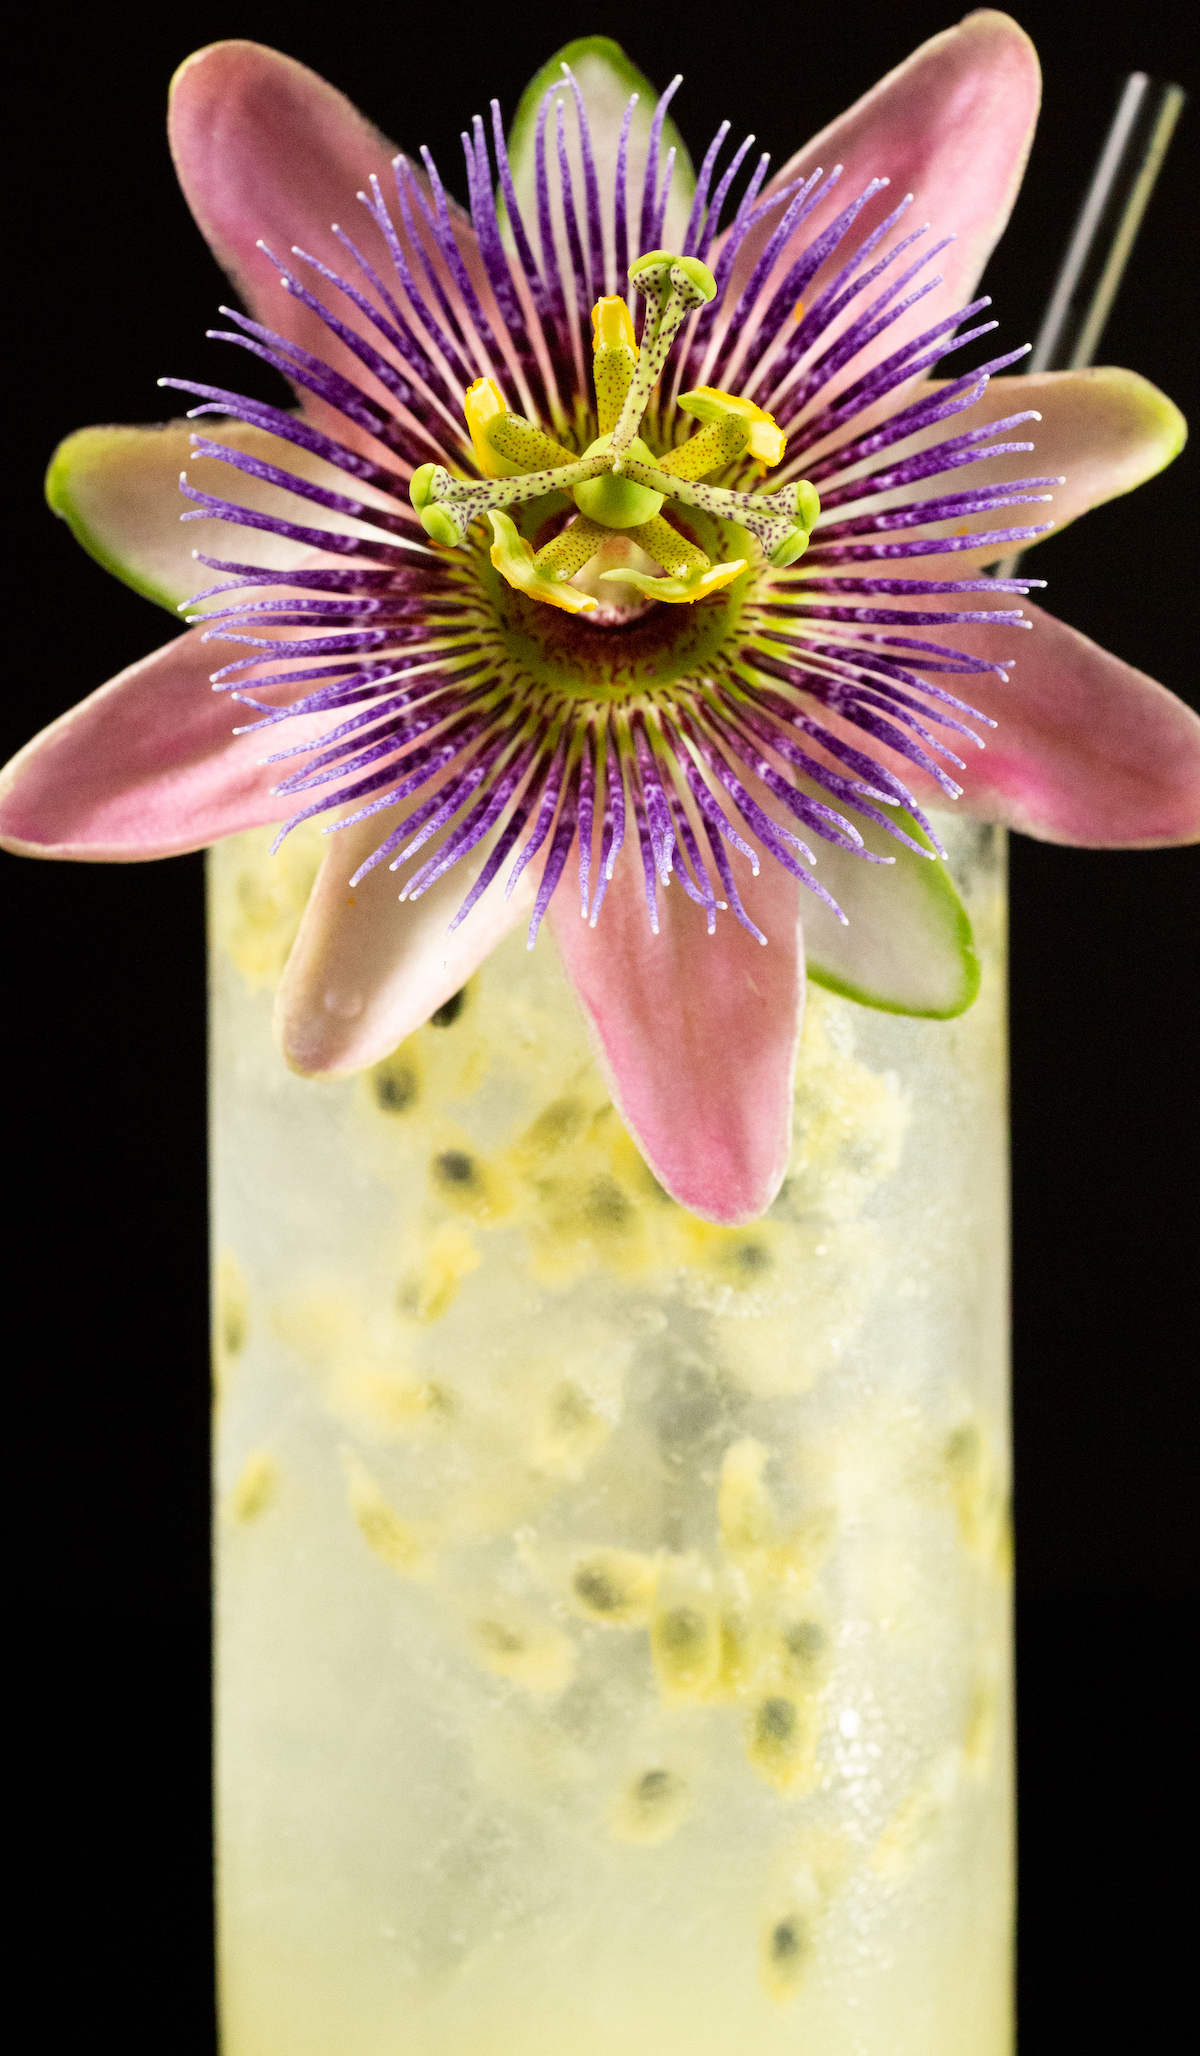 A cocktail with passion fruit puree is garnished with a passion fruit flower and black straw